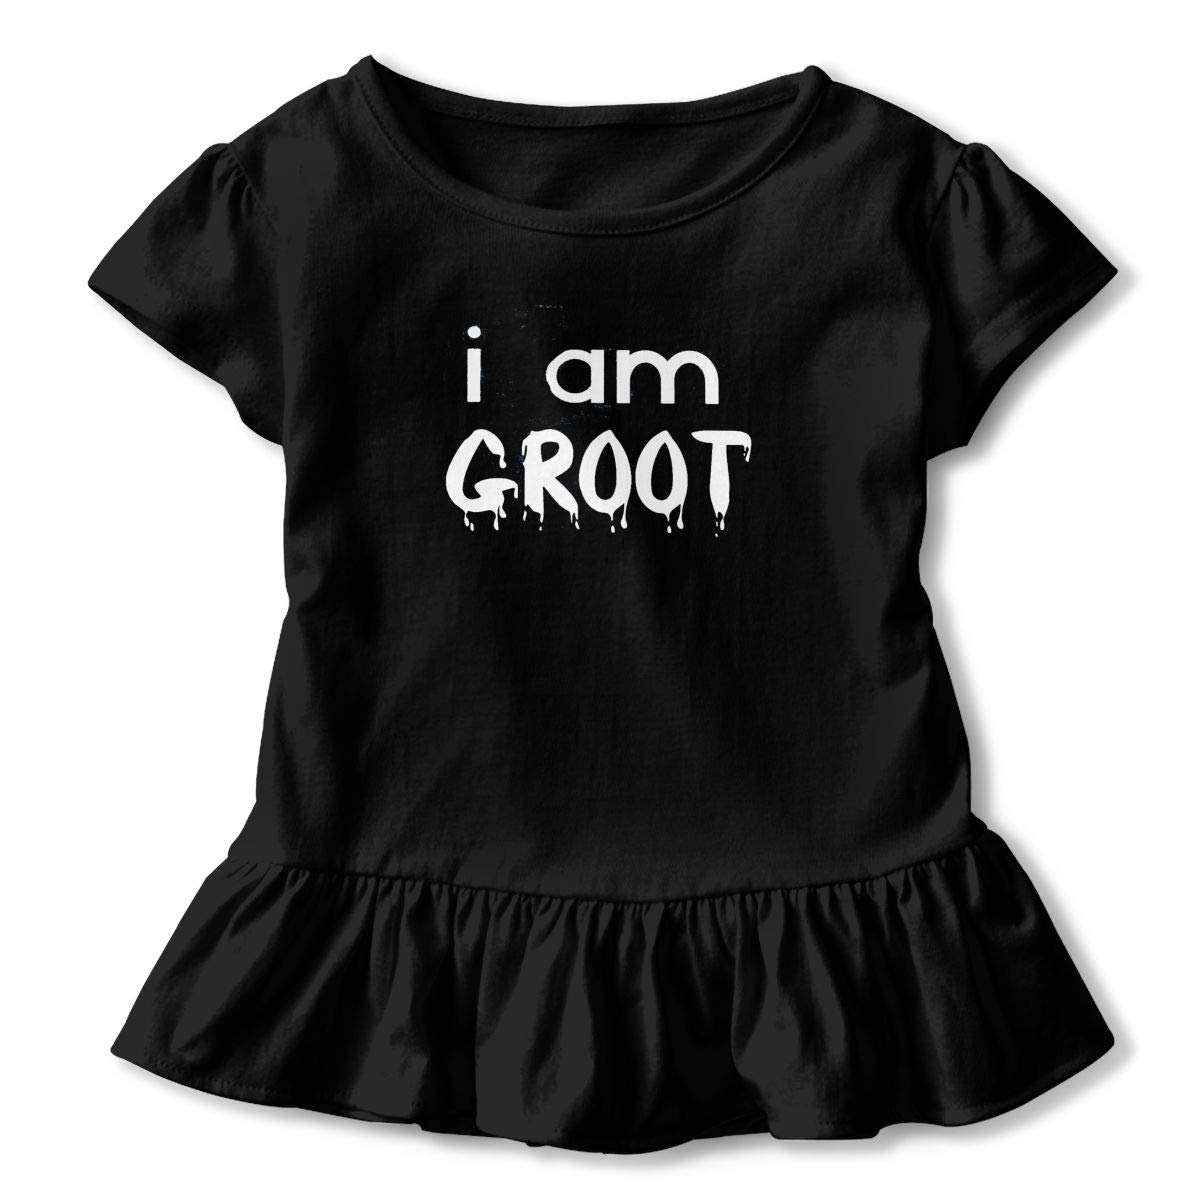 I Am Groot Cute Toddler Kids Girls Short Sleeves Shirts with Ruffles and O-Neck Printed Patterns in Front for Daily Wear Theme Party School Black